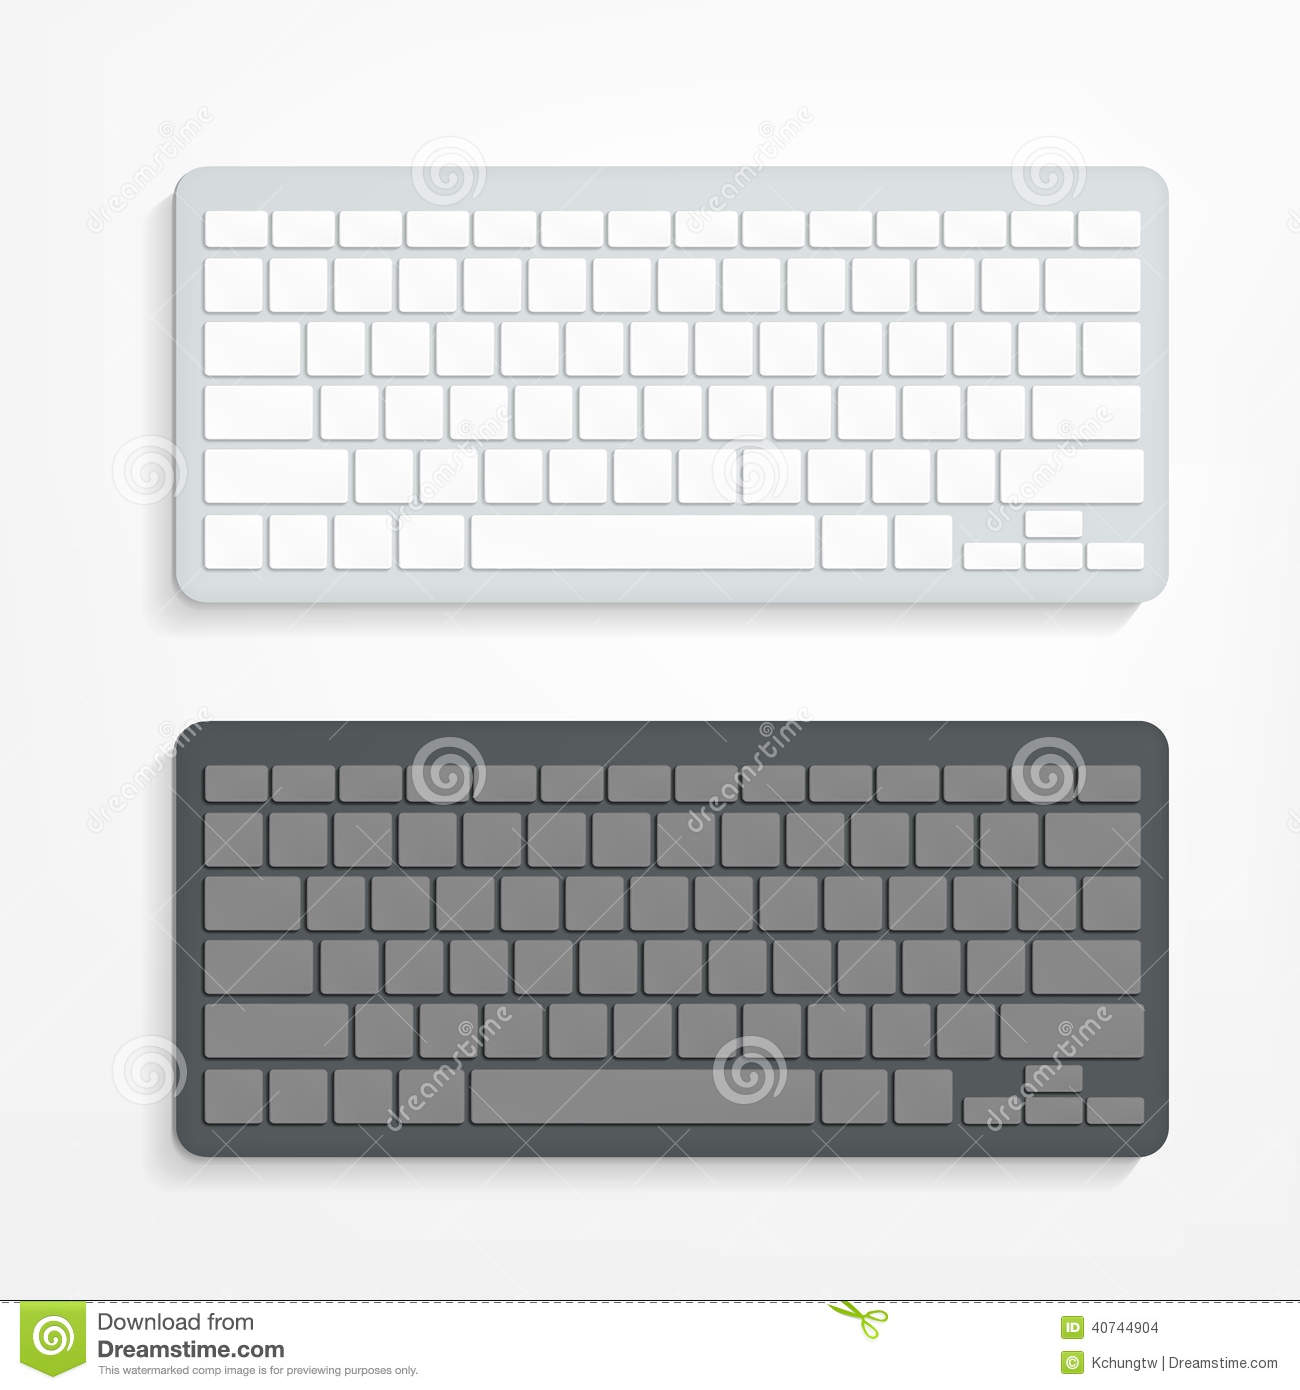 Computer Keyboard On White Background Stock Vector